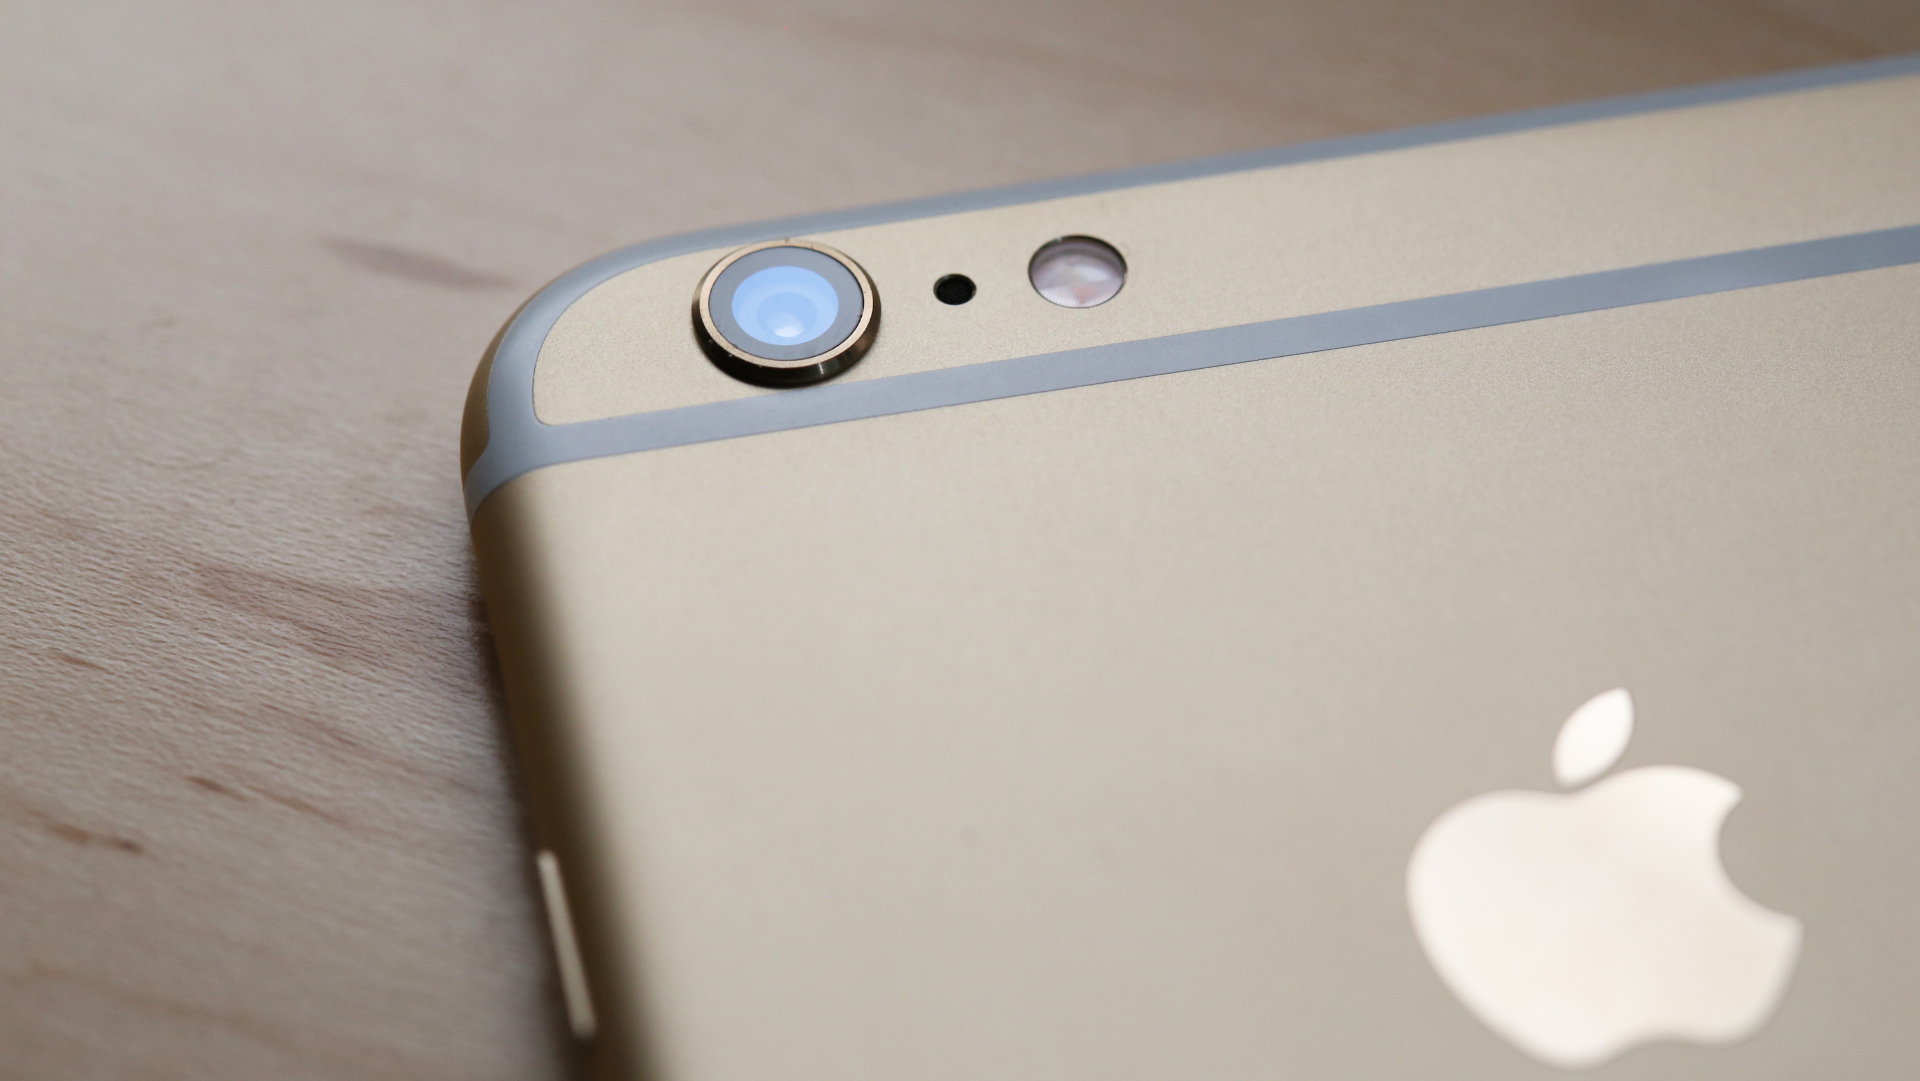 Apple launched a replacement program iPhone 6 camera review Plus95